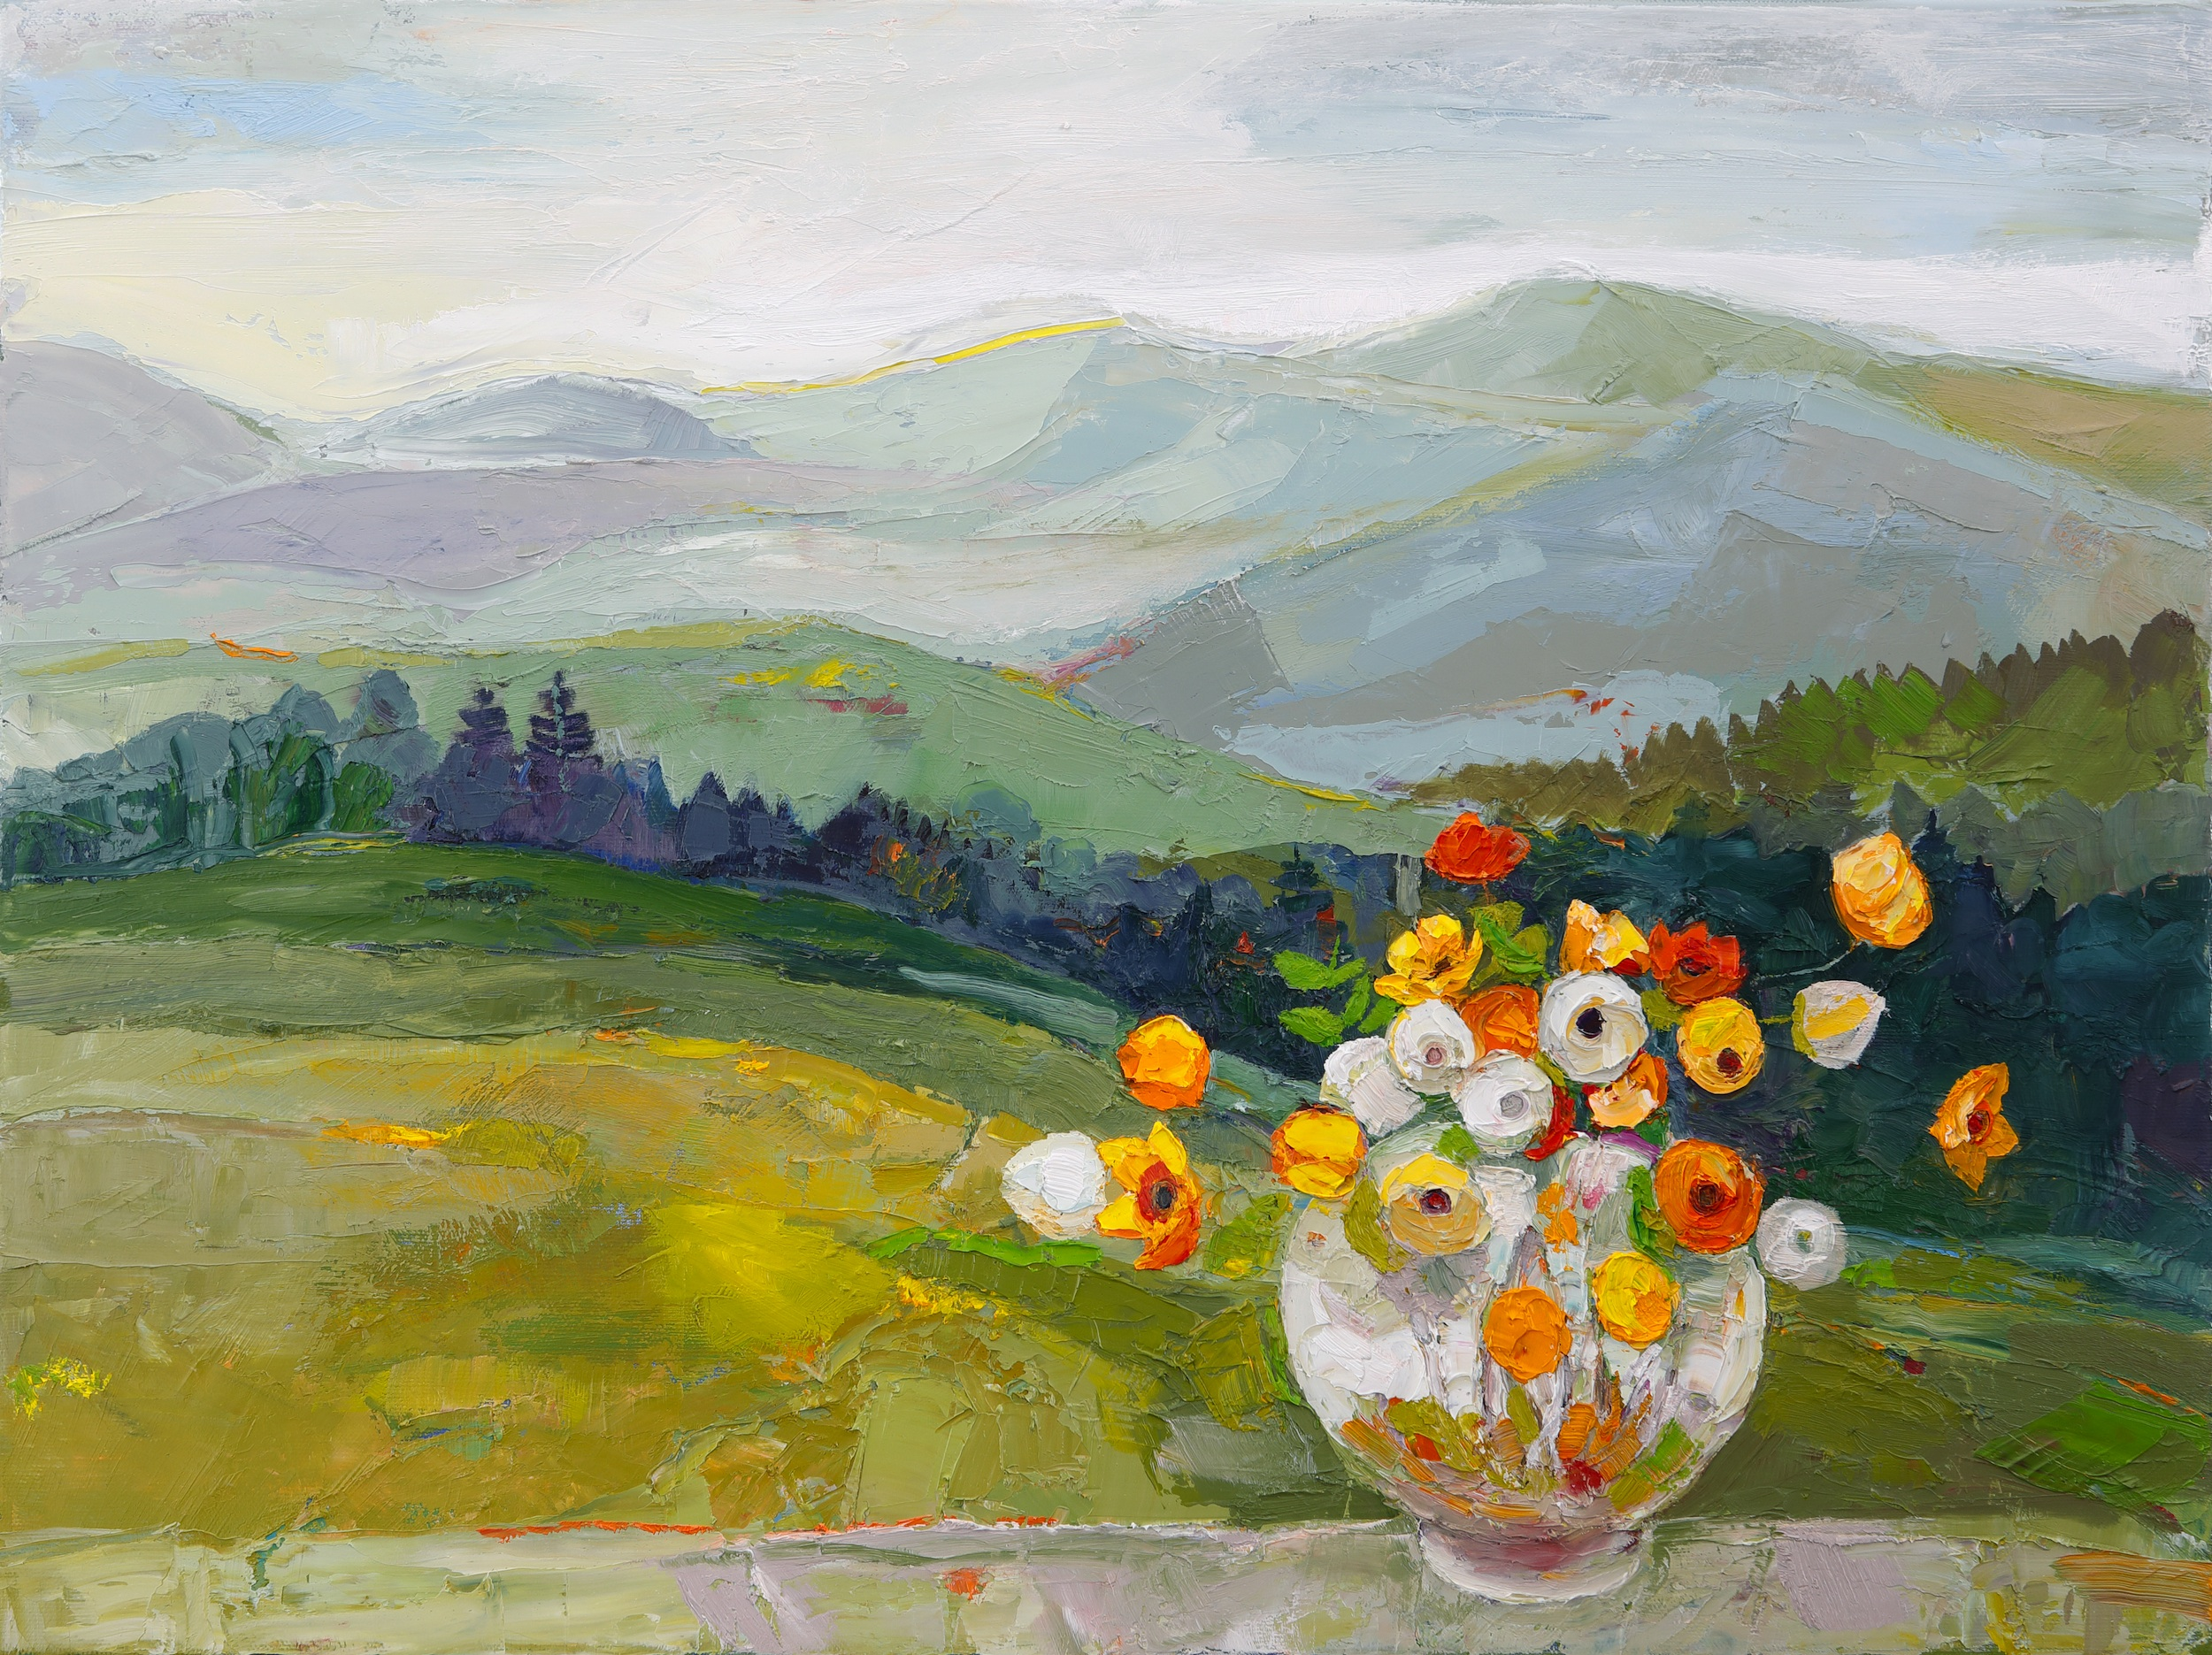 Title: Summer Alps Size: 18 x 24 inches Medium: Oil on Canvas Price: £3250